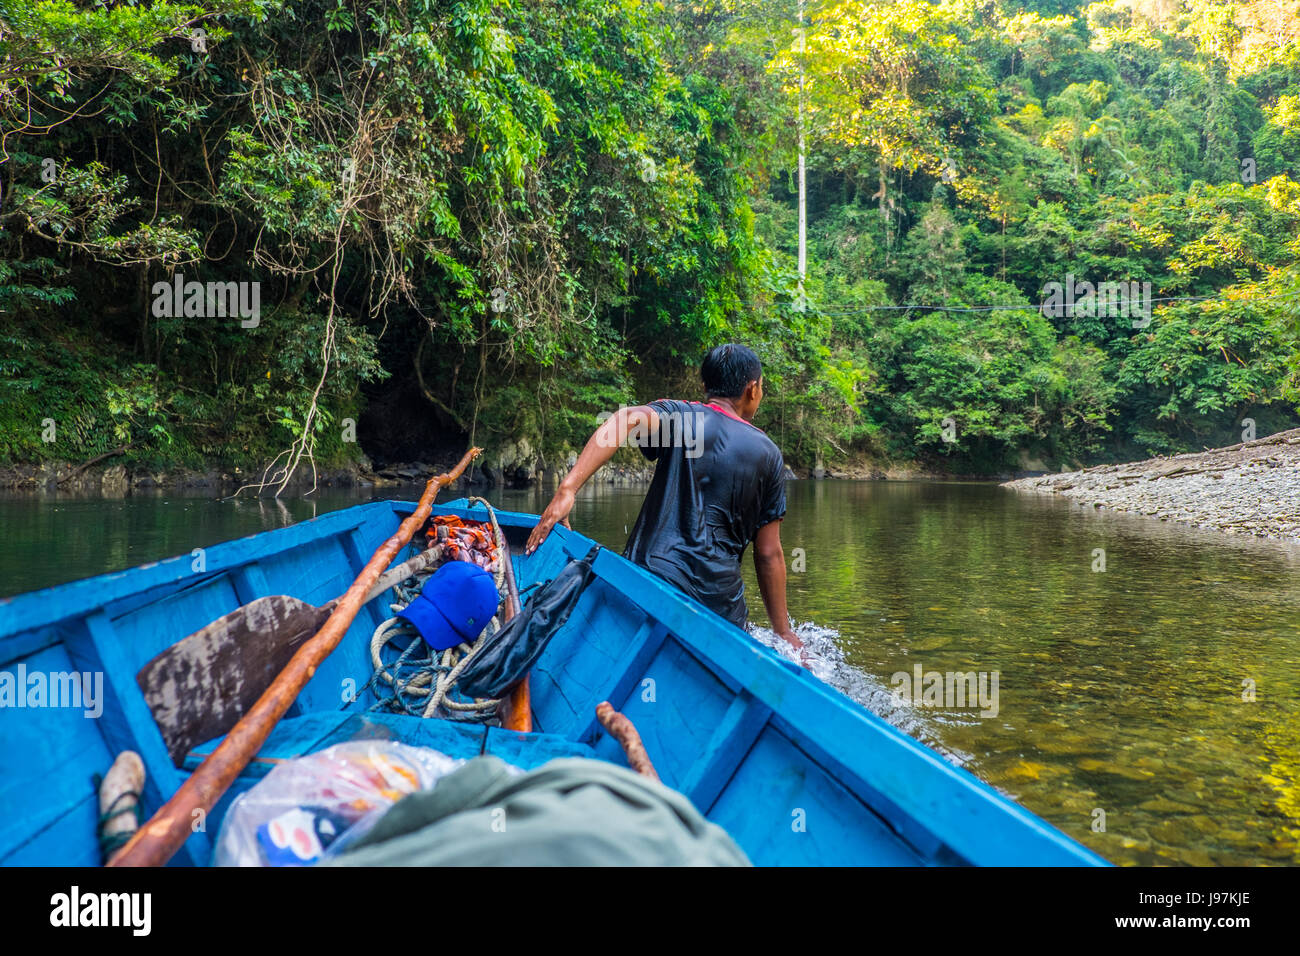 Pulling the wooden boat at shallow waters along the Embalok river in the Heart Of Borneo, West Kalimantan Indonesia. - Stock Image